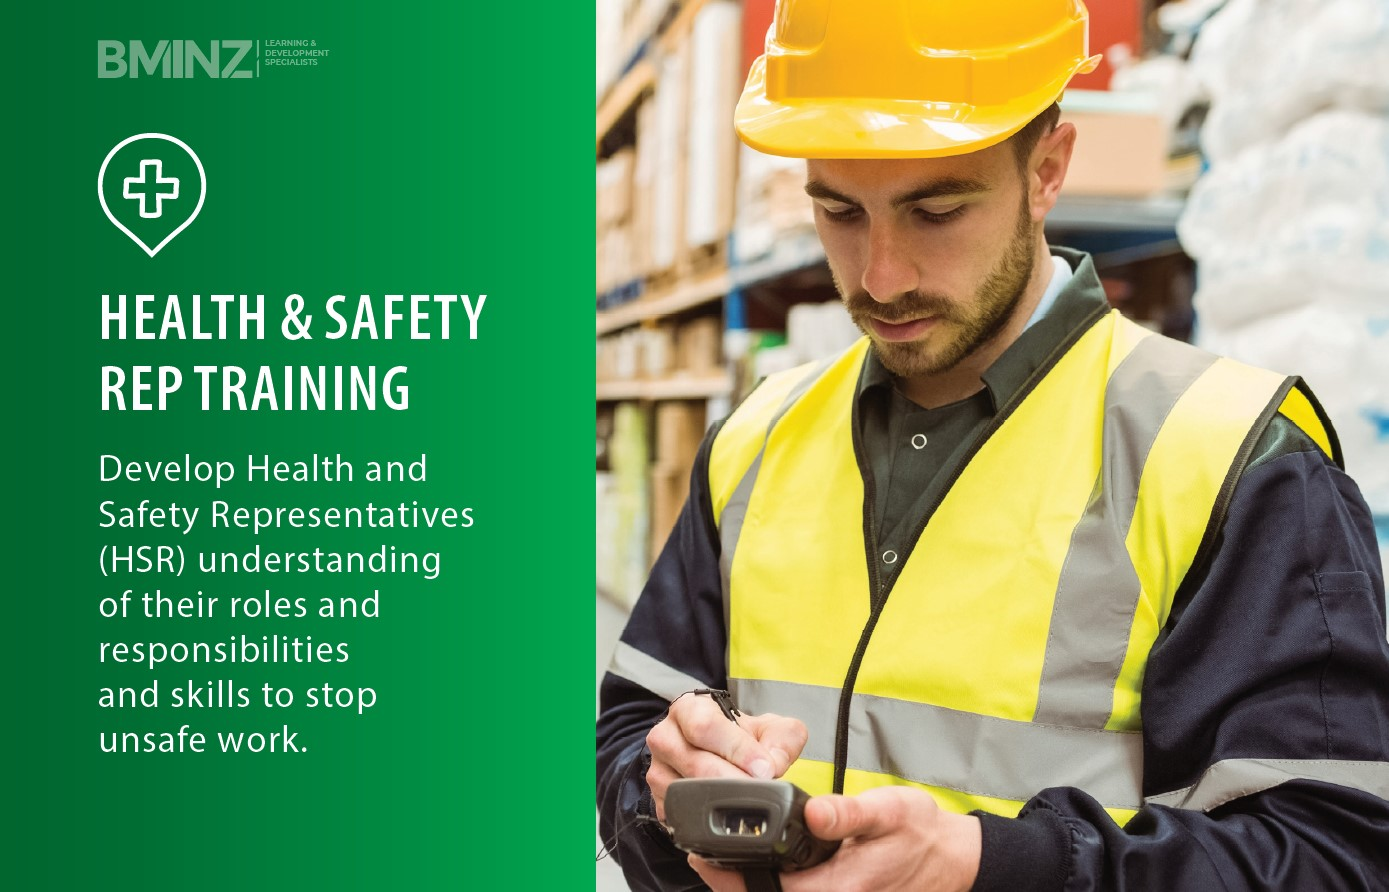 HEALTH & SAFETY REP TRAINING: Develop Health and Safety Representatives (HSR) understanding of their roles and responsibilities and skills to stop unsafe work.